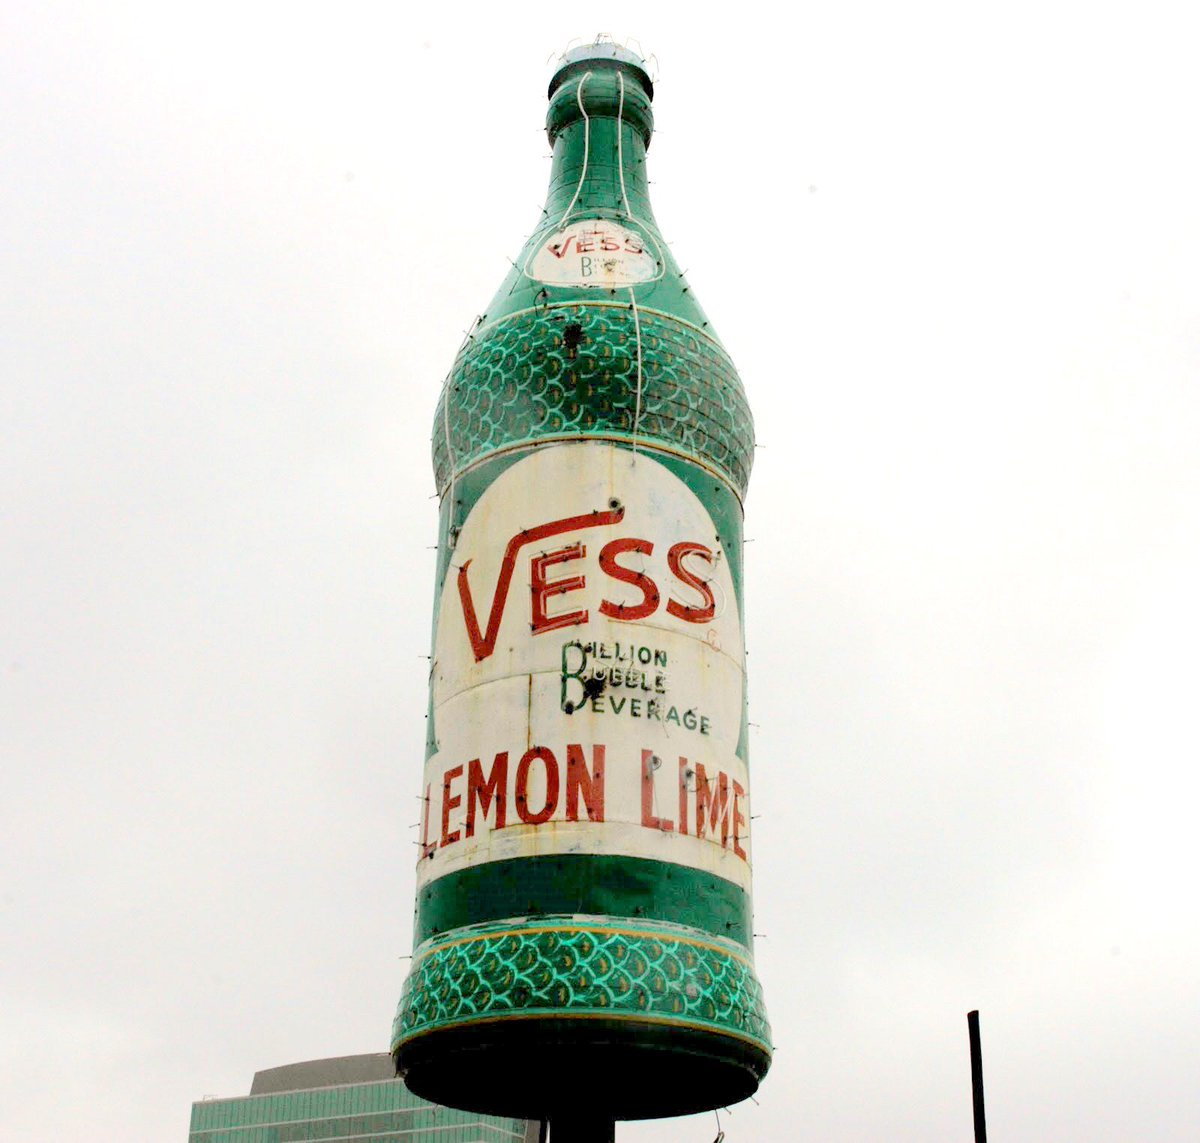 Cool to see Vess is announcing the big bottle just north of downtown is getting restored. https://t.co/uem4Mix4jd